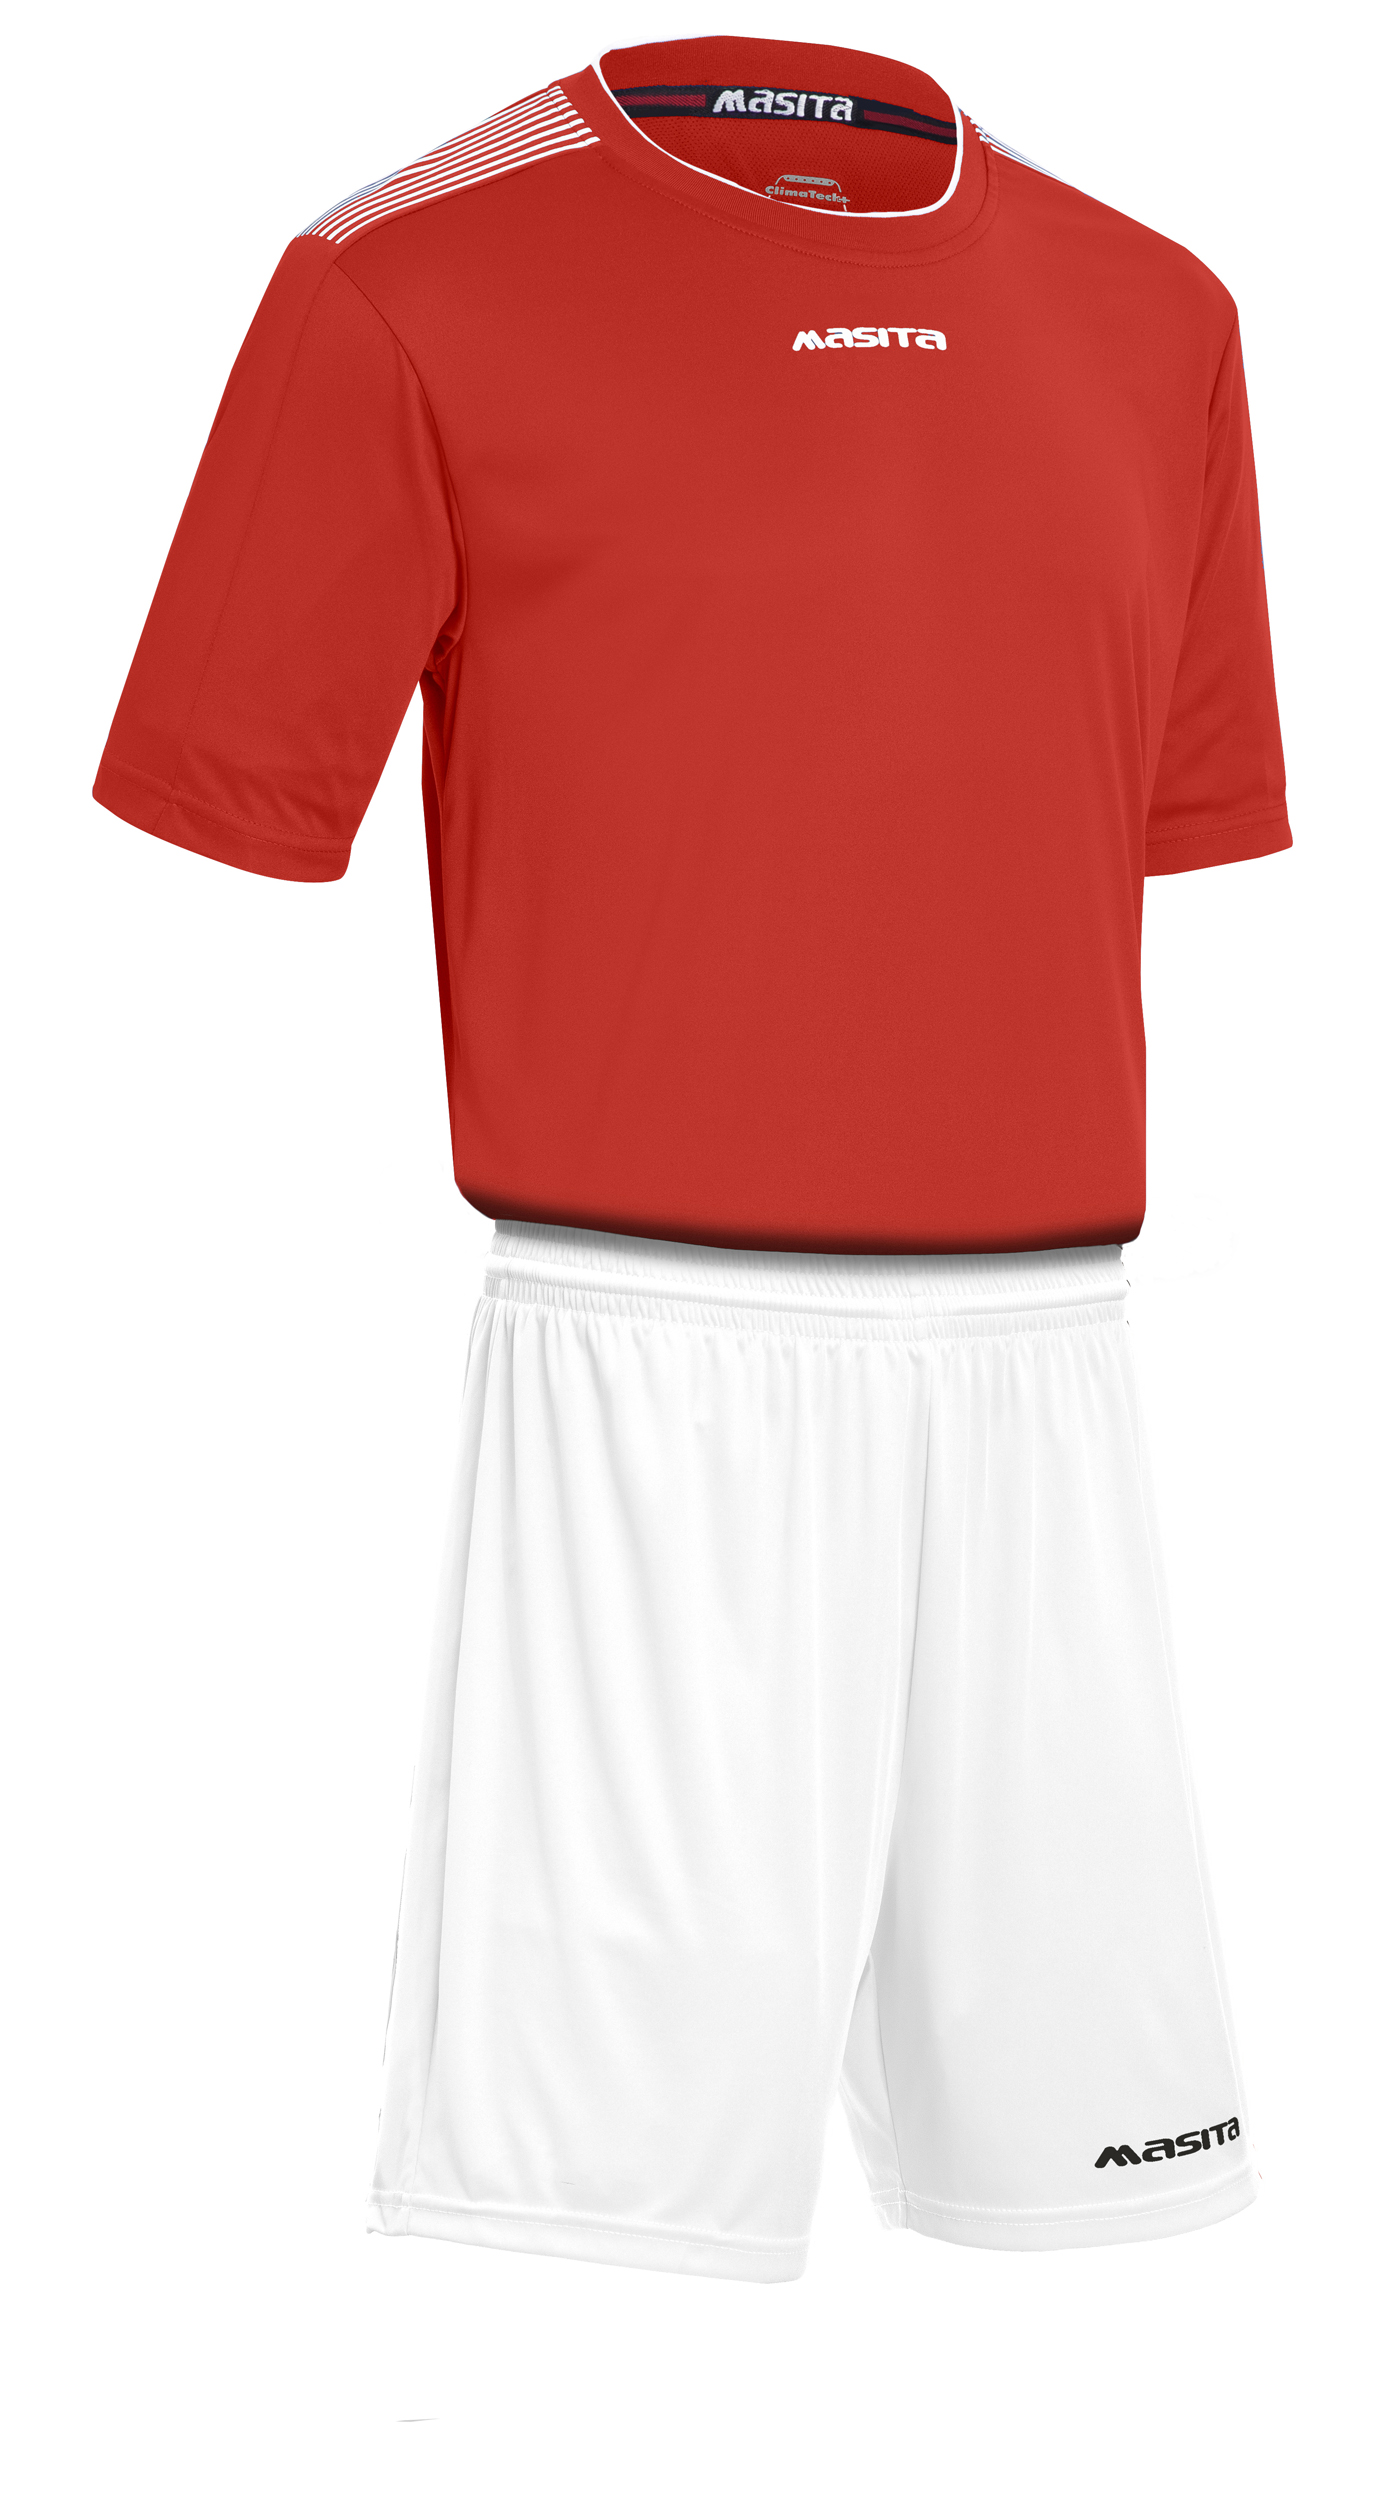 SportShirt Sevilla  Red / White